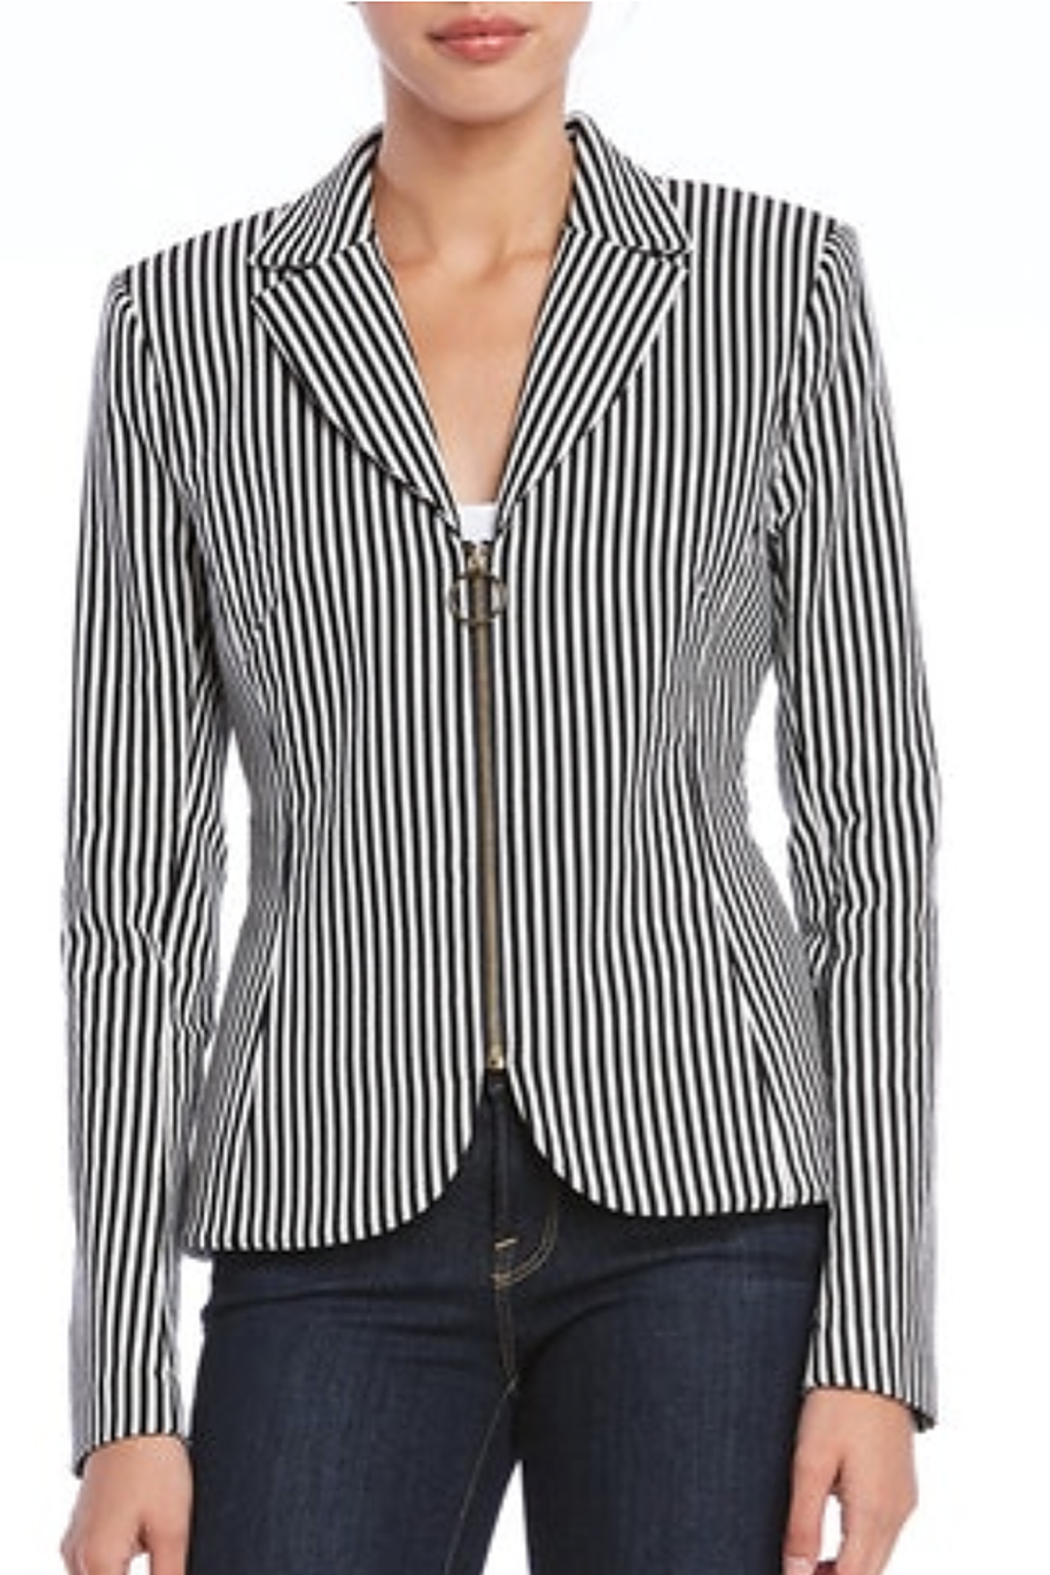 Bailey 44 Gangway Pinstripe Jacket - Side Cropped Image